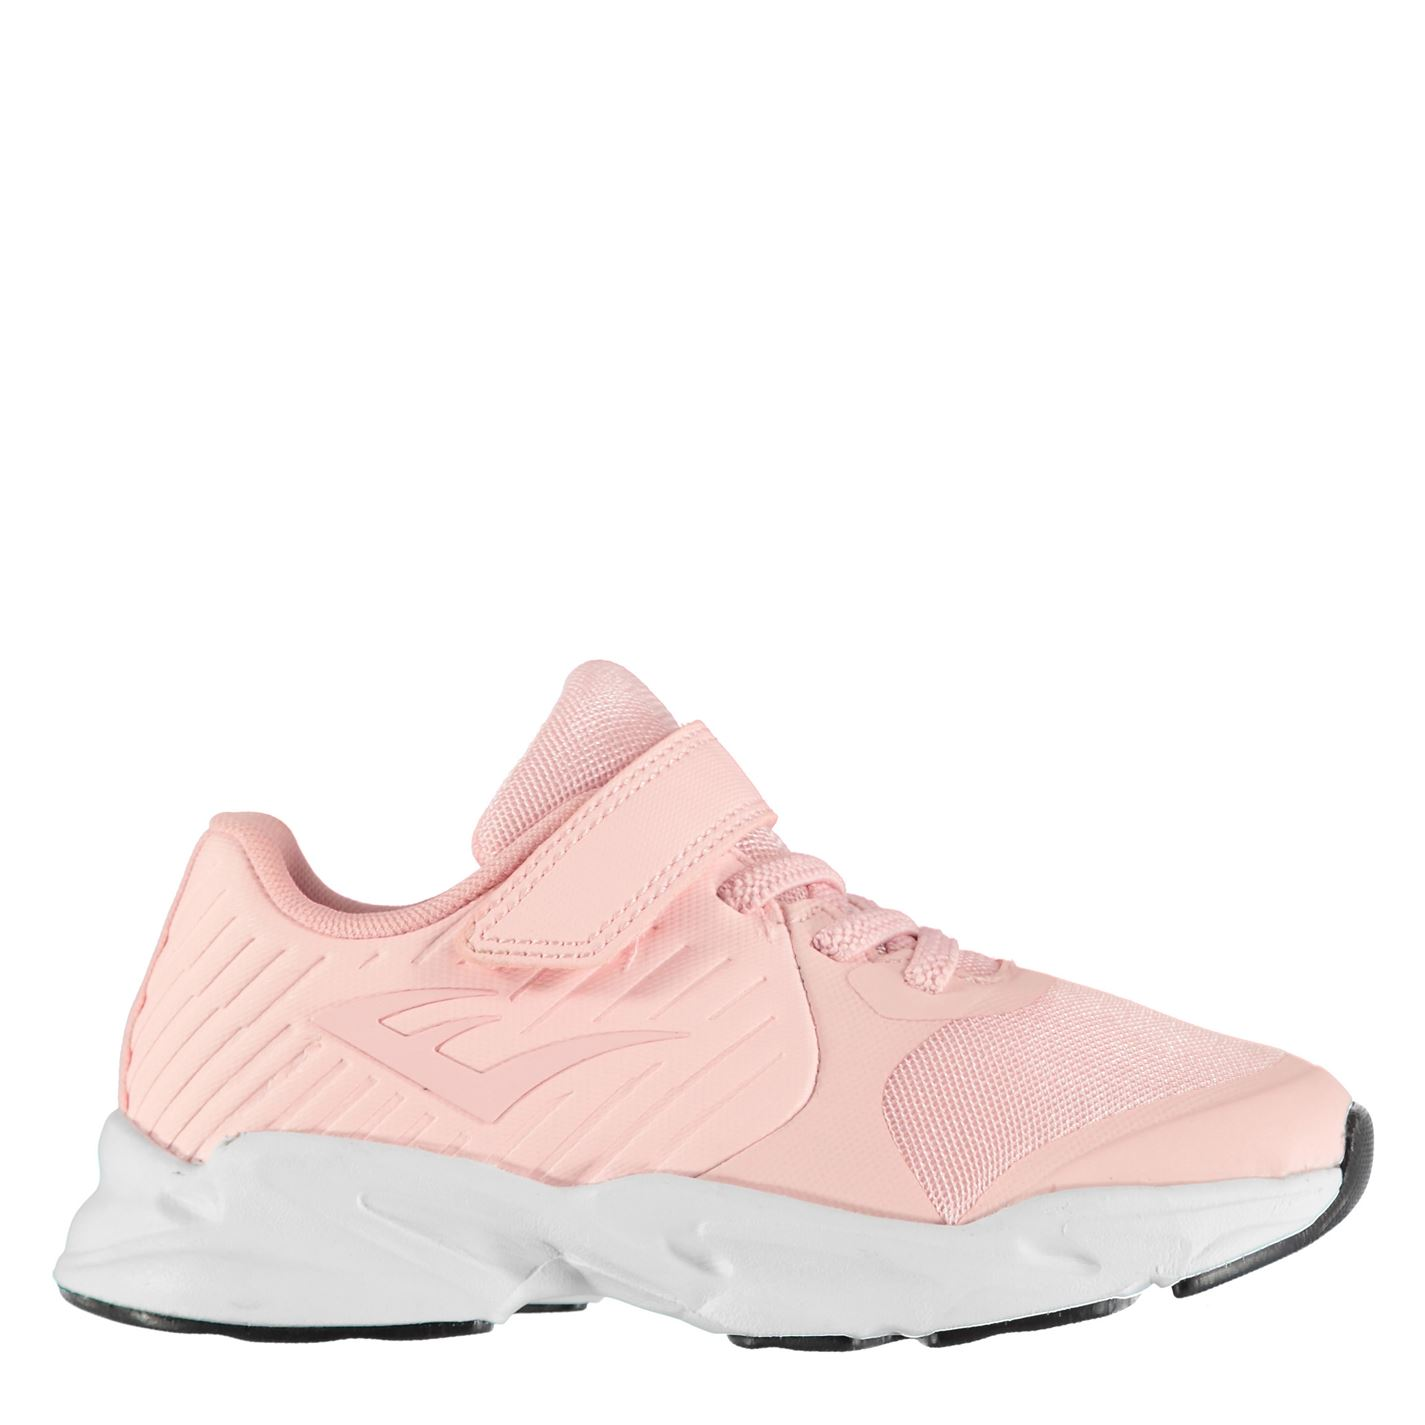 Everlast Truce Trainers Child Boys Pink/White